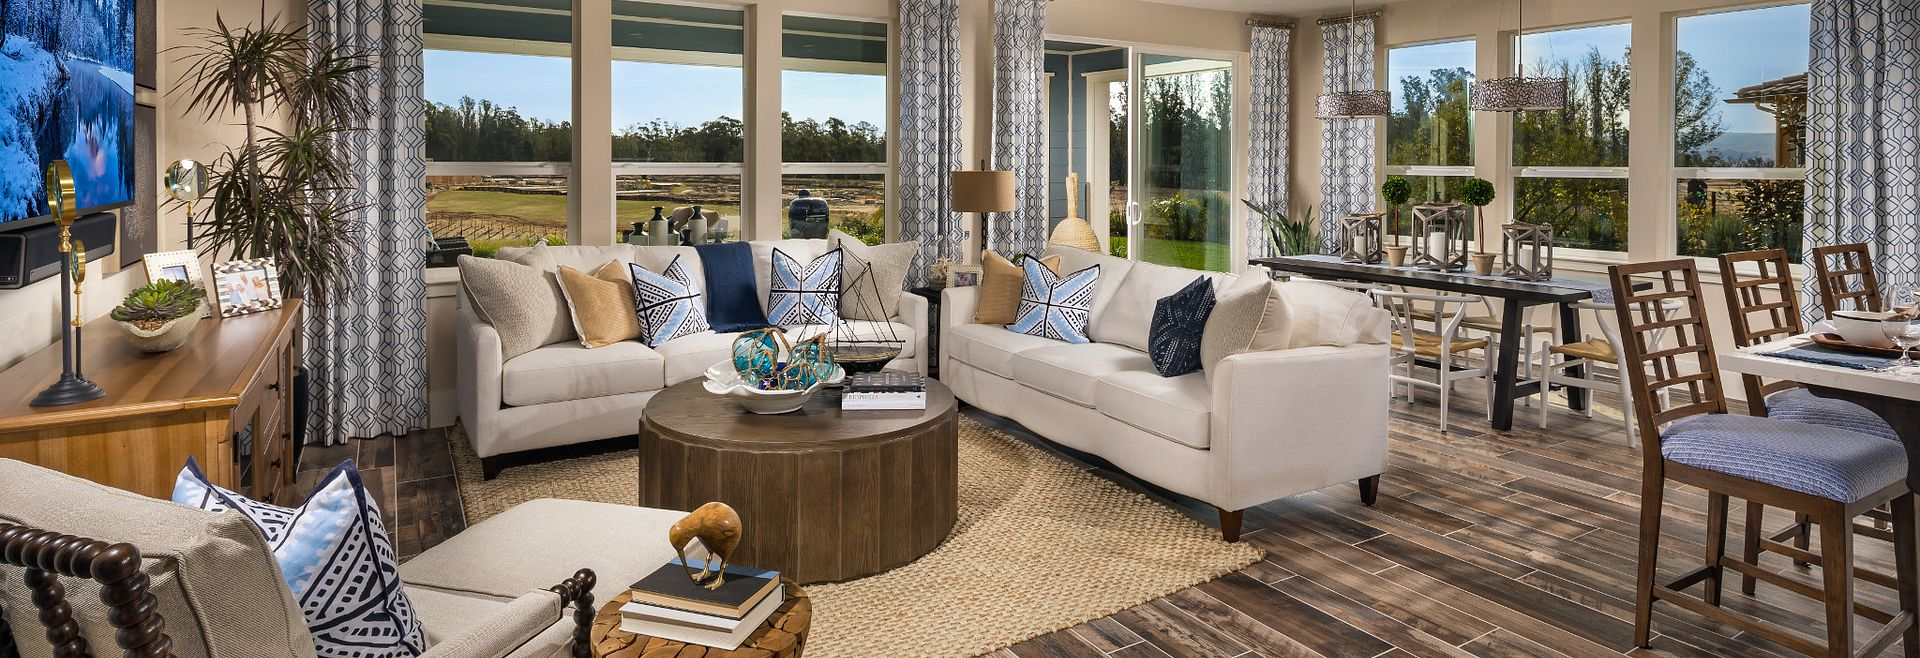 Trilogy Monarch Dunes Solvang Living Space